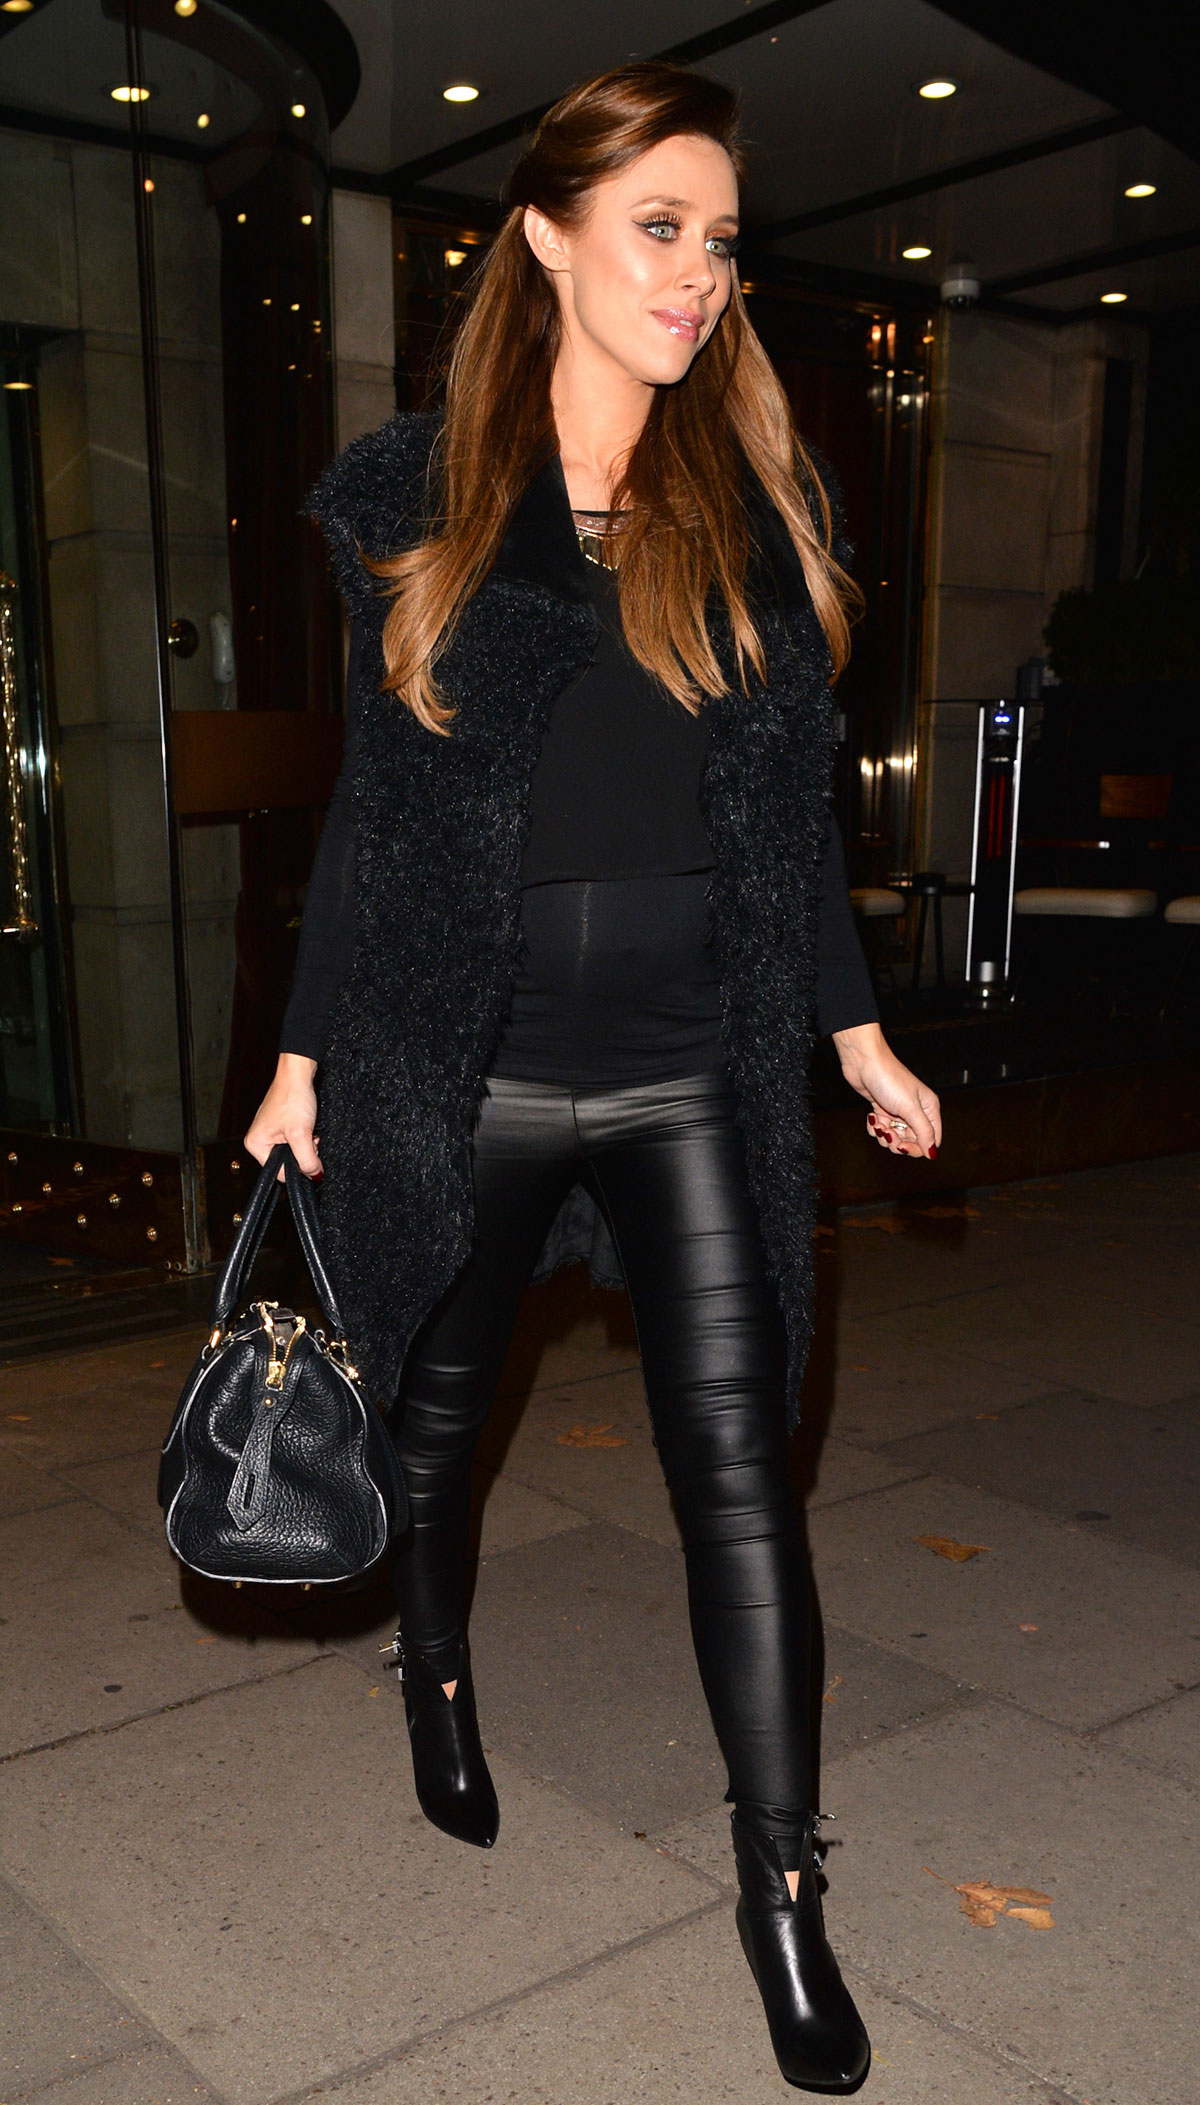 Una Healy leaving hotel in London